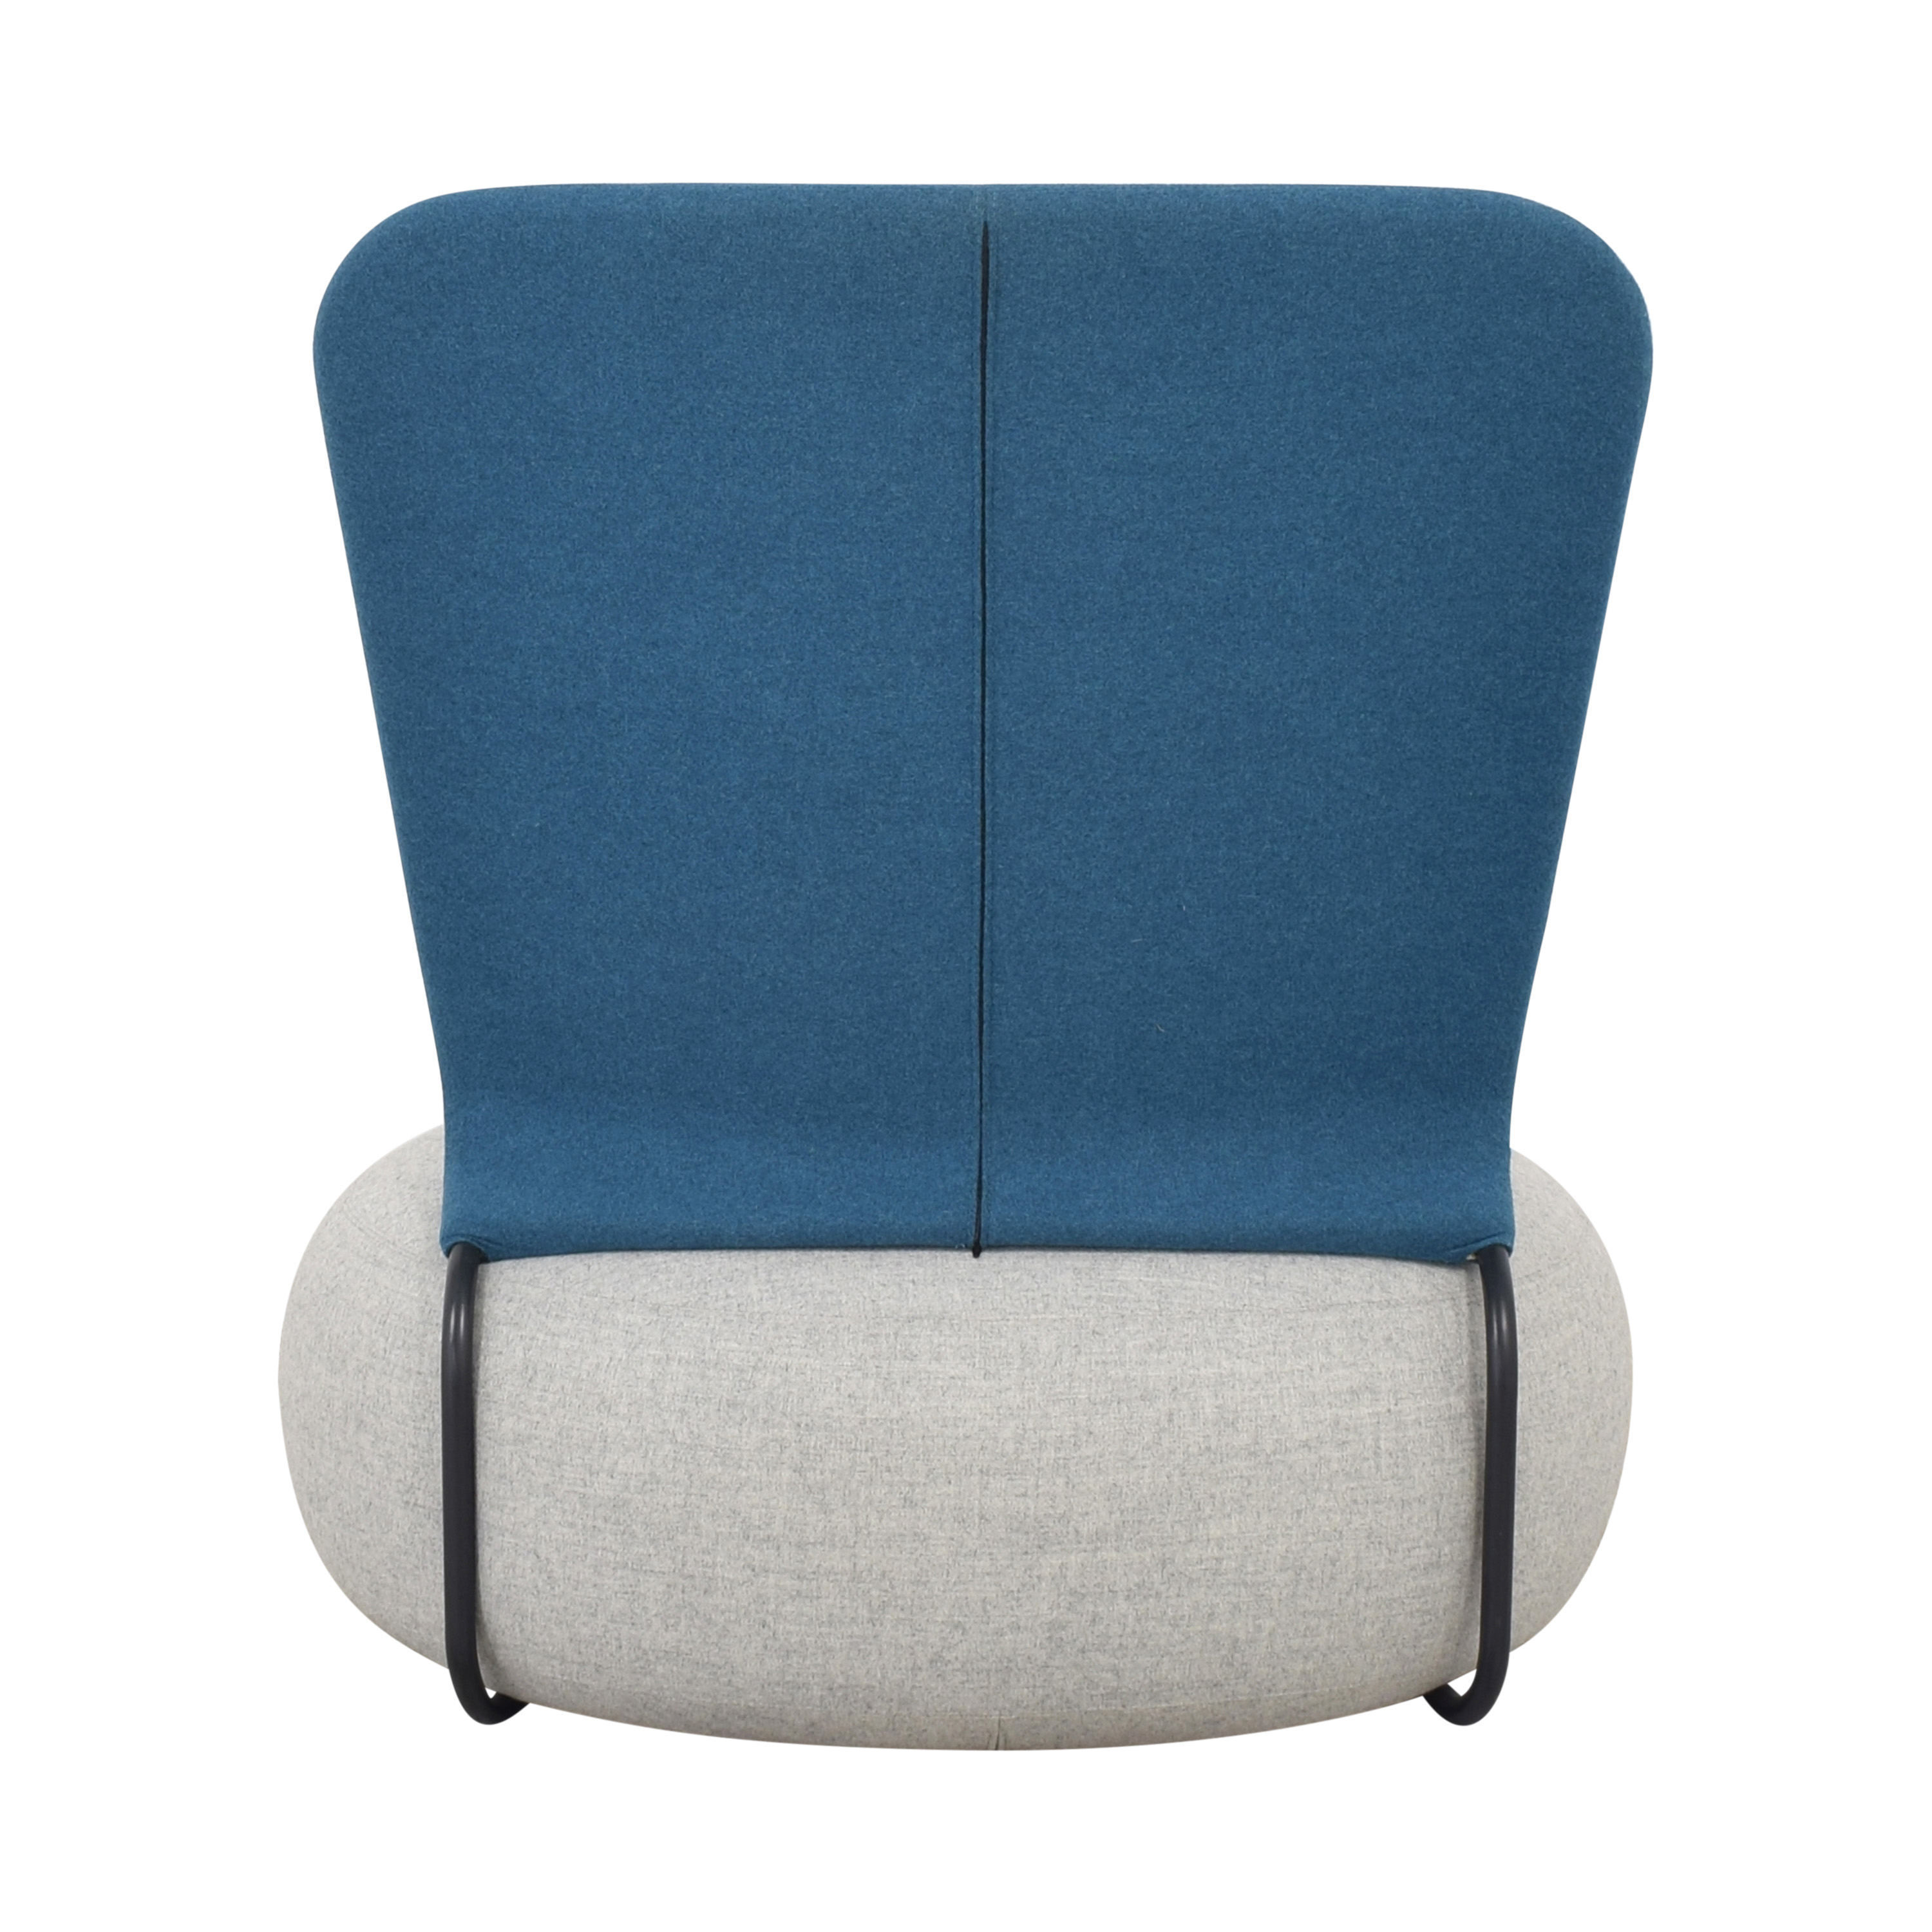 Koleksiyon Koleksiyon Solis Pouf with Backrest nj